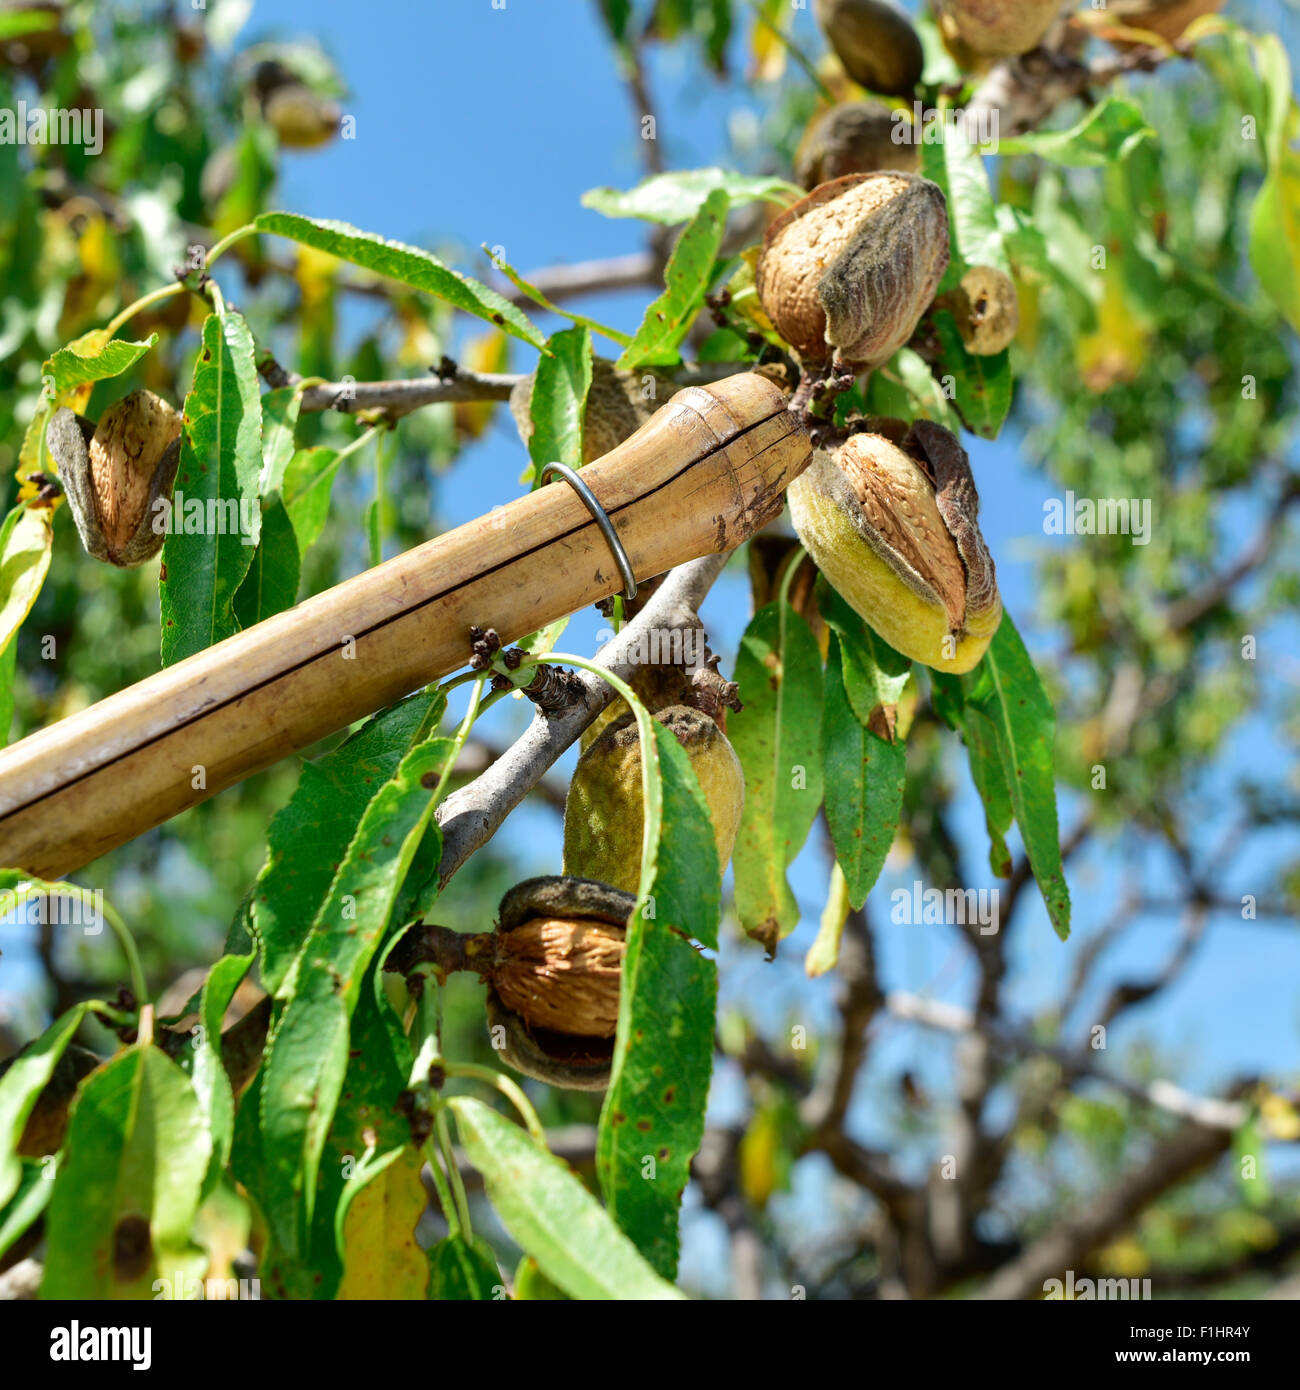 closeup of a stick hitting the branches of an almond tree during the harvesting - Stock Image